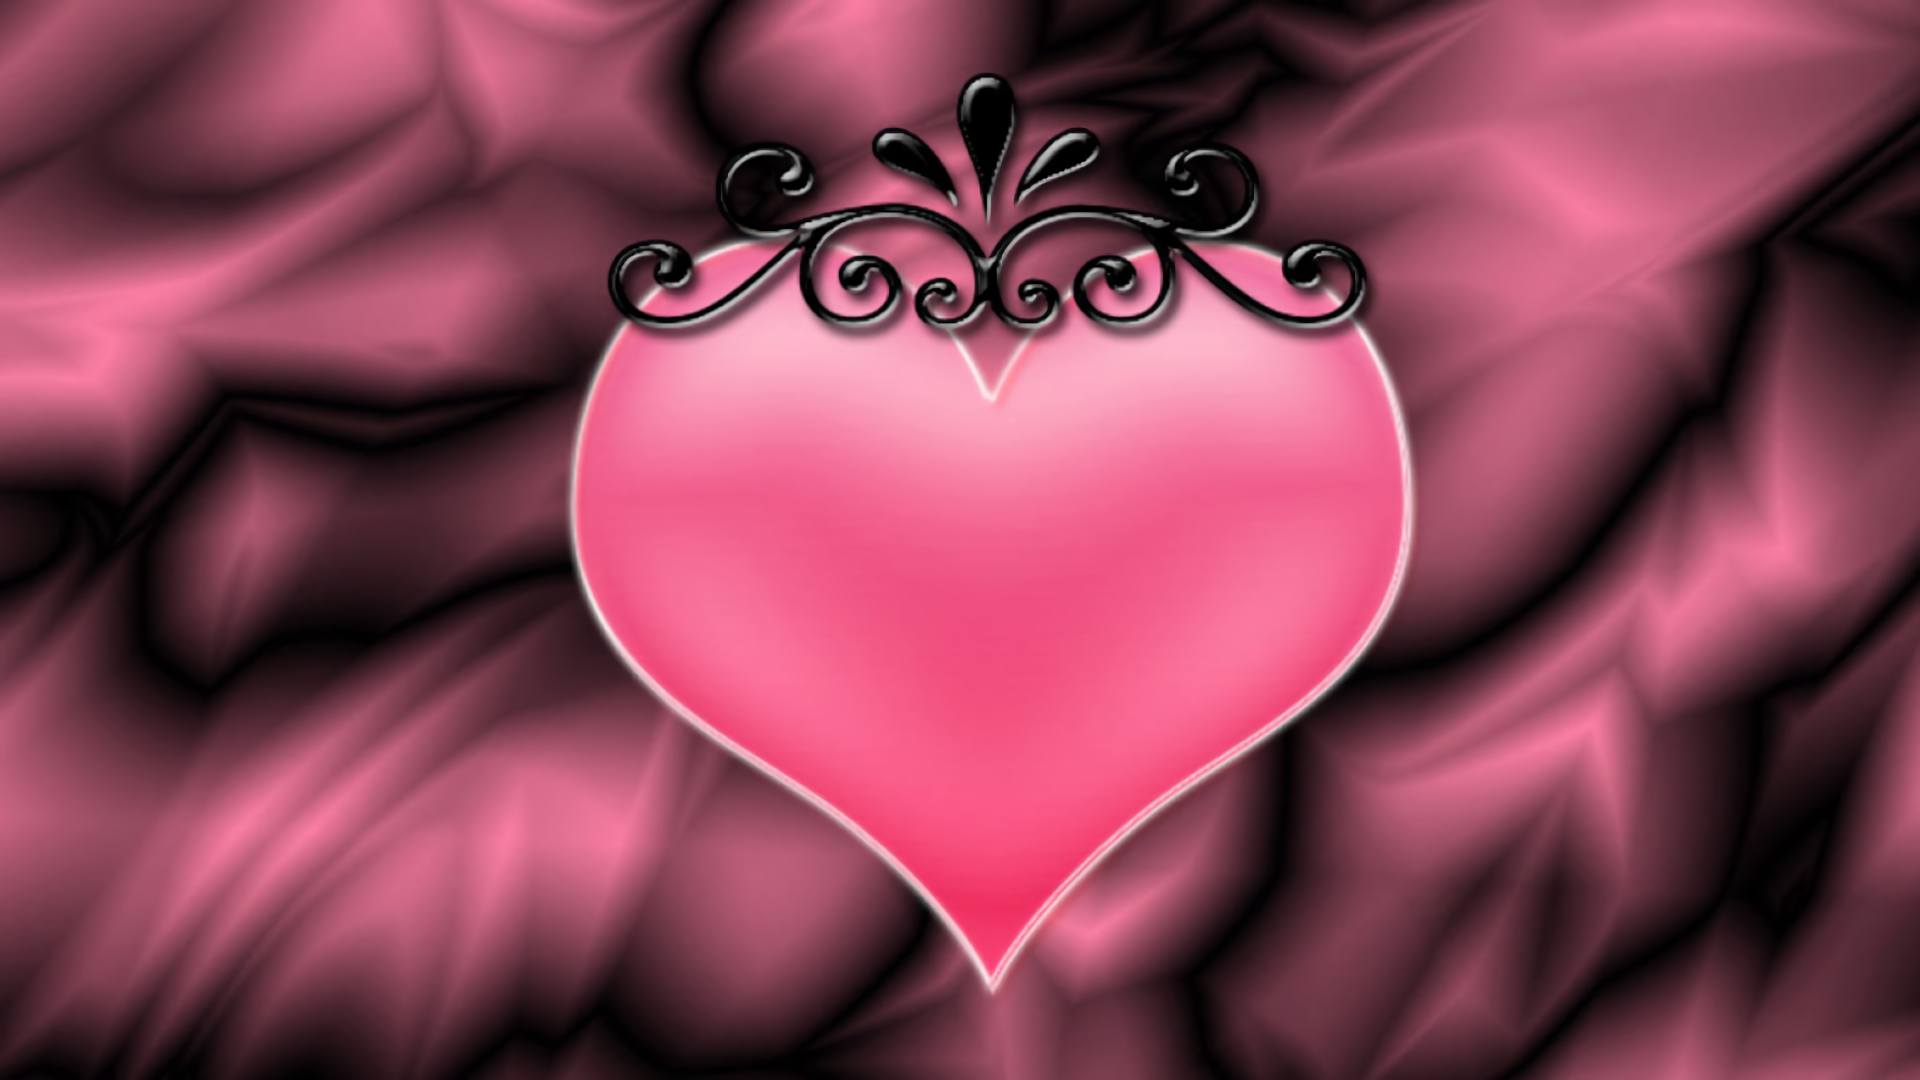 Wallpaper Love Pink Black : Pink crowned Heart Full HD Wallpaper and Background Image 1920x1080 ID:674739